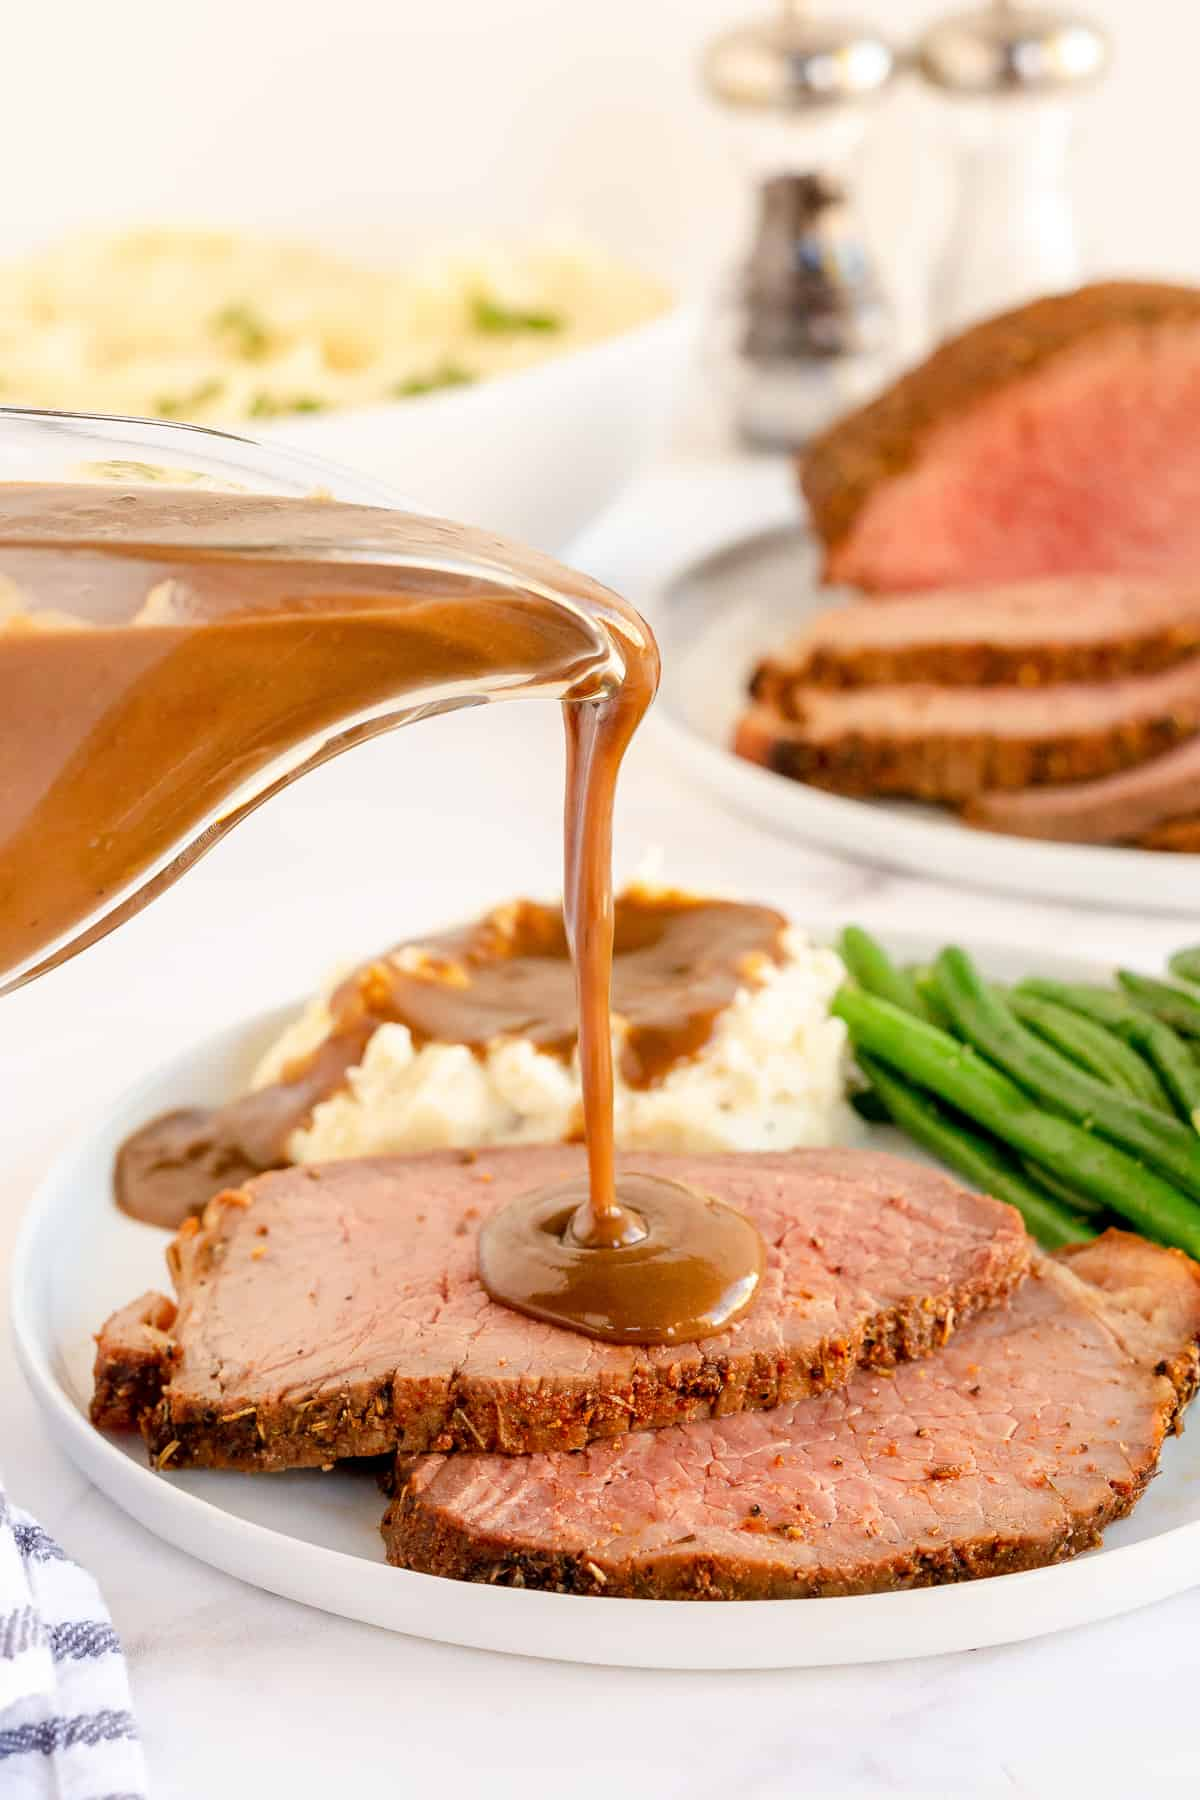 Gravy pours on to slices of eye of round roast beef.